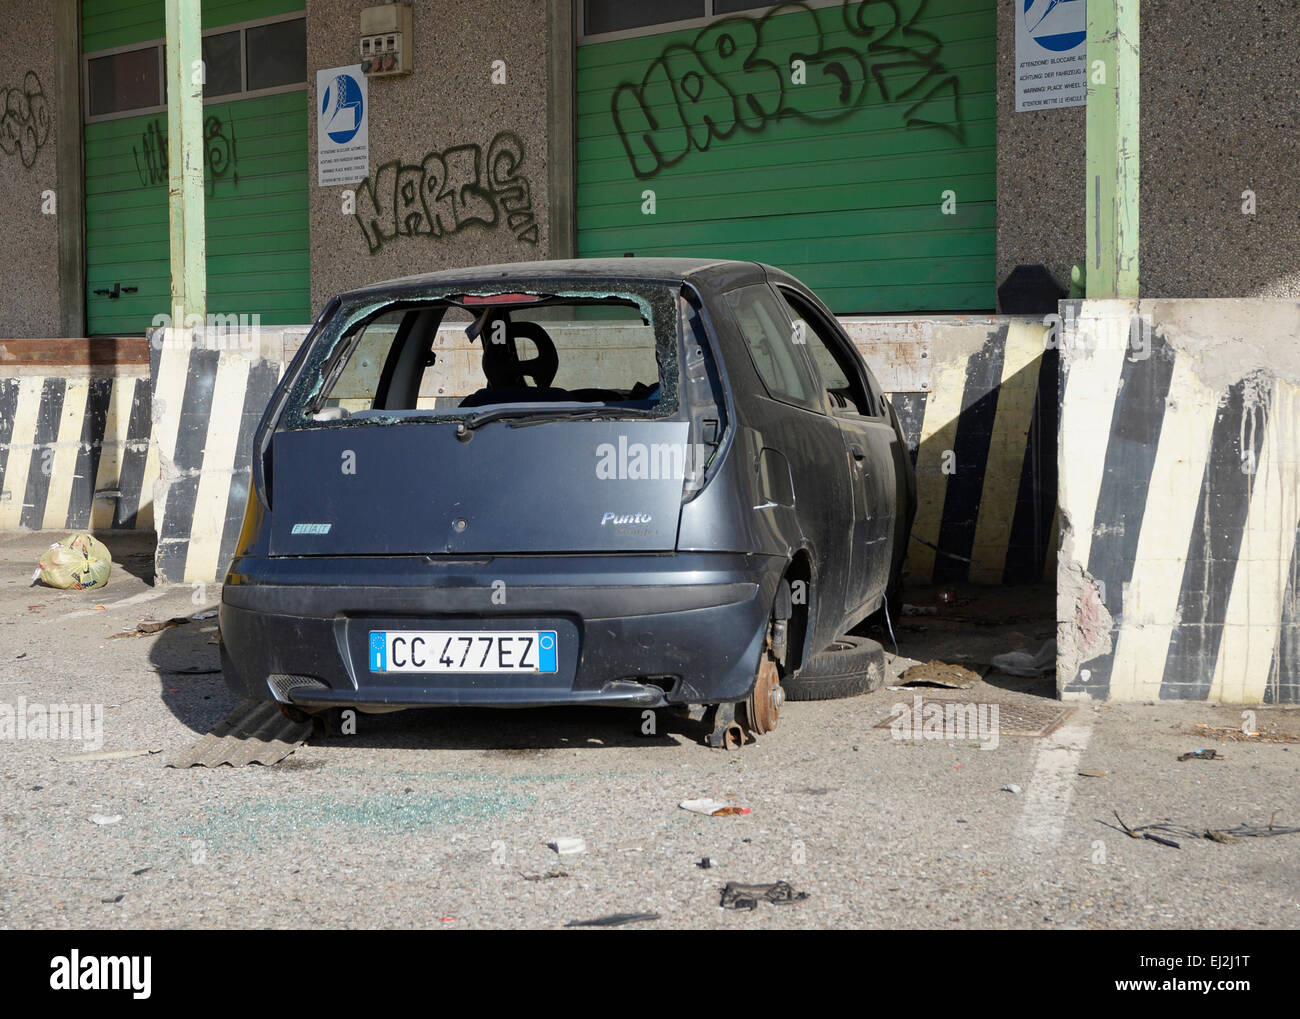 abandoned car with smashed glass, Italy - Stock Image